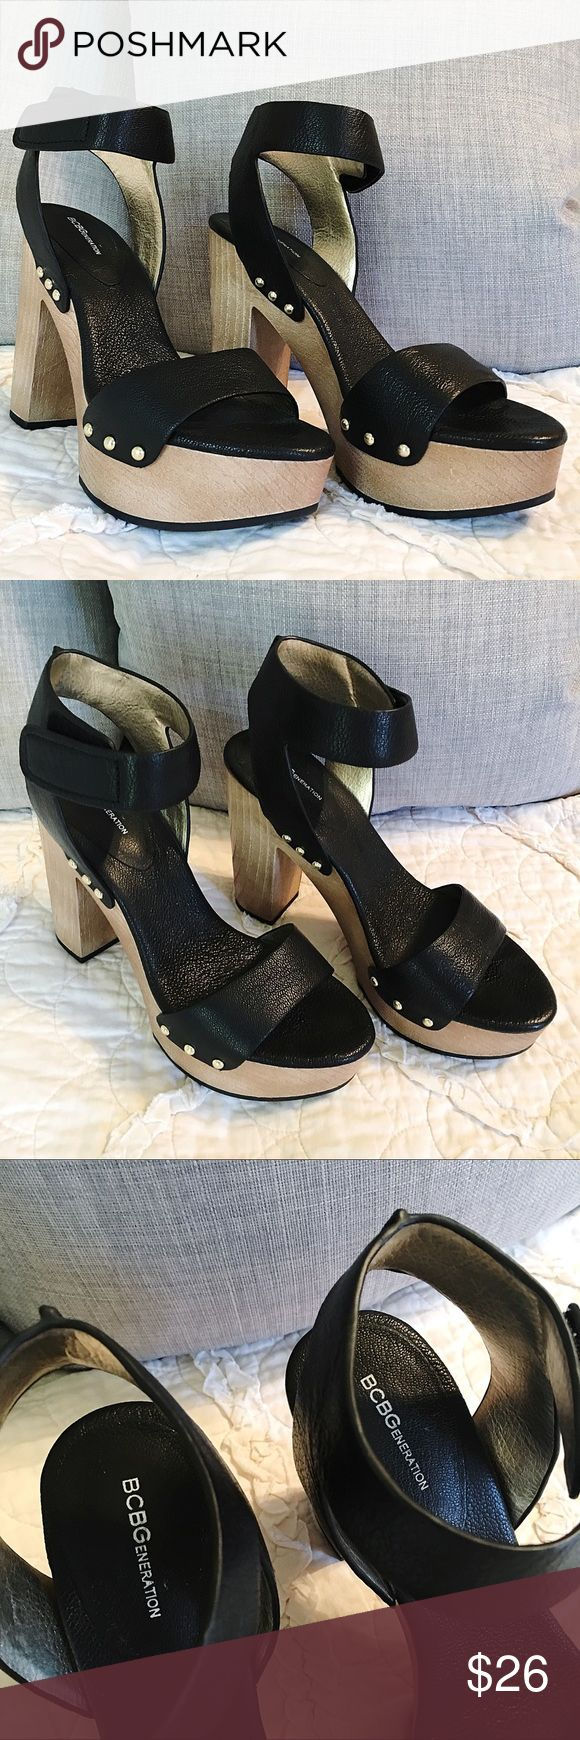 BCBGeneration Black Heels BCBGeneration black heels! Imitation wood adds nice texture to overall look. In excellent condition. Size 9M. Five inch heels. Velcro ankle straps. The perfect staple pair for your closet! BCBGeneration Shoes Heels